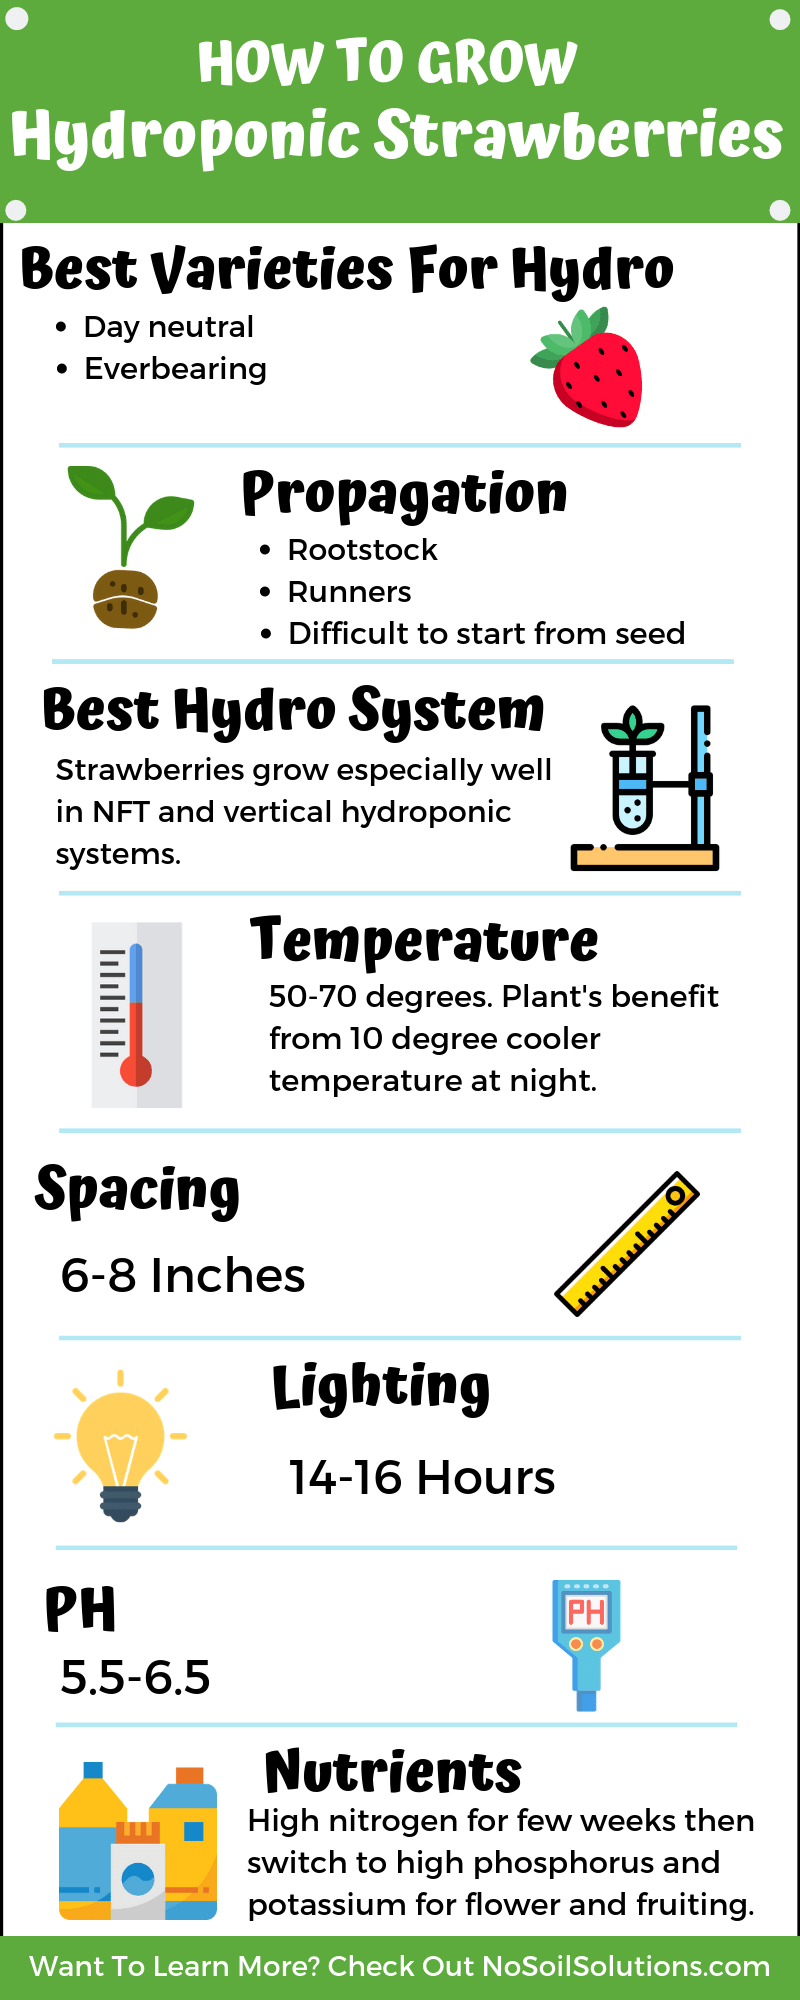 How To Grow Hydroponic Strawberries - NoSoilSolutions